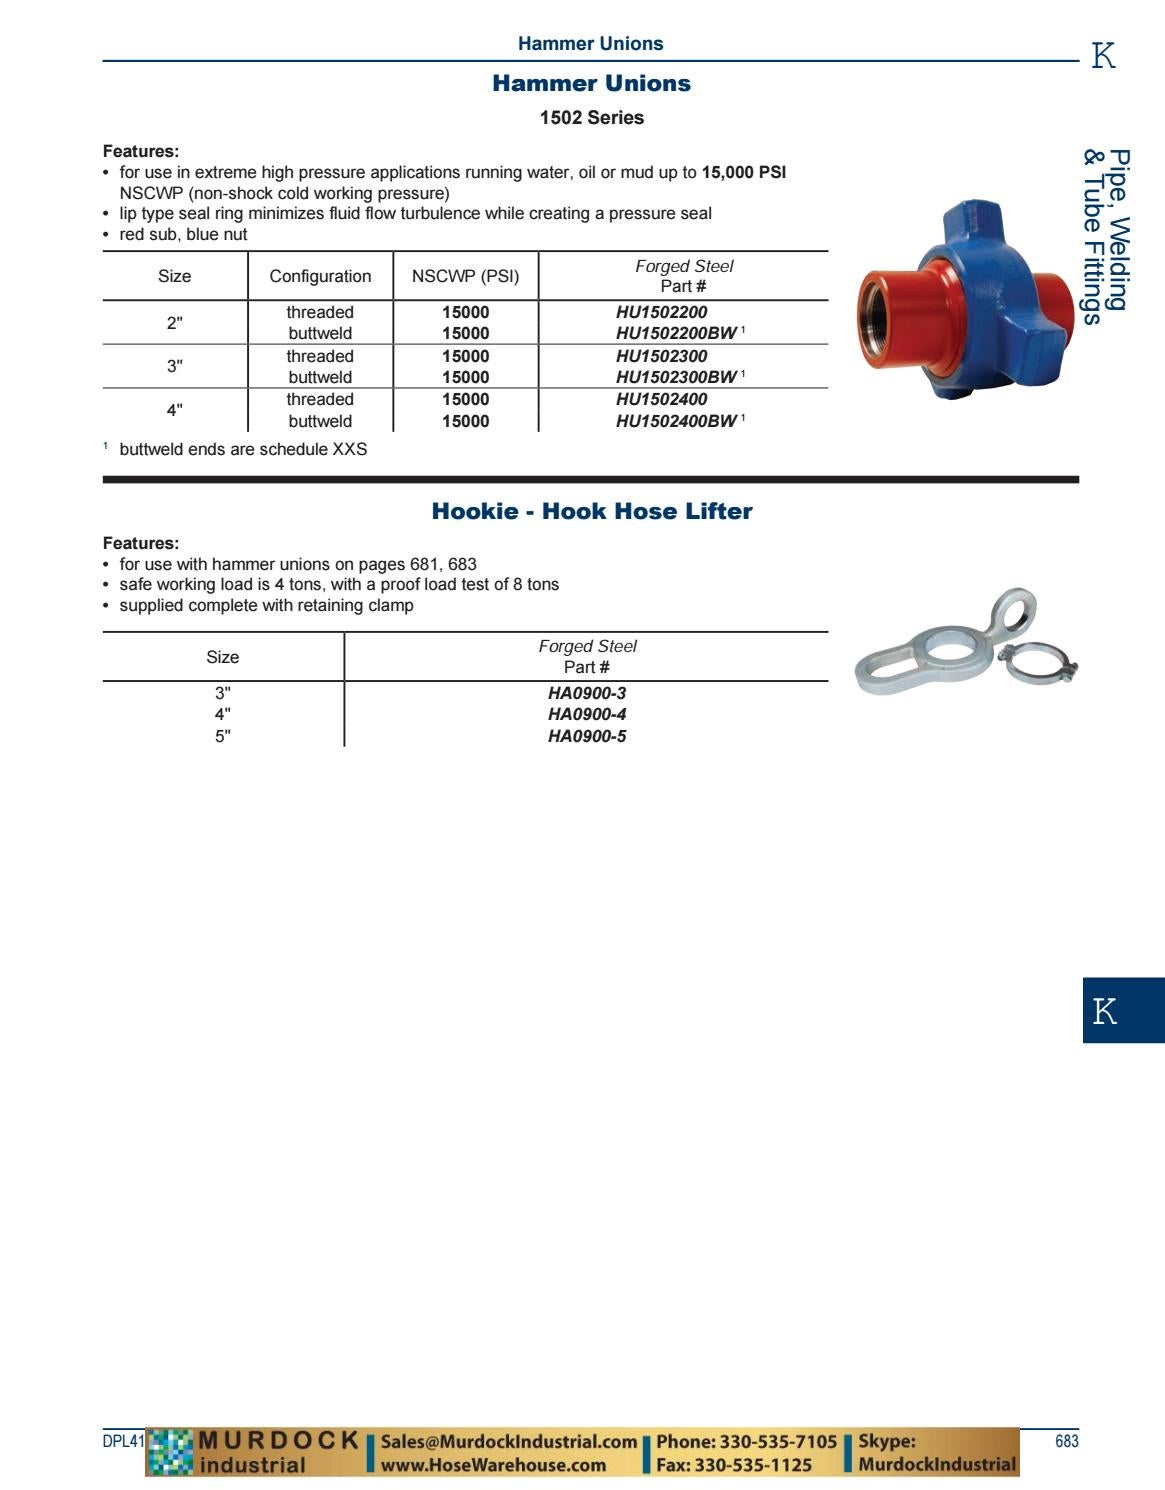 Dixon Valve and Coupling Complete PDF Catalog DPL418 2018 by Murdock